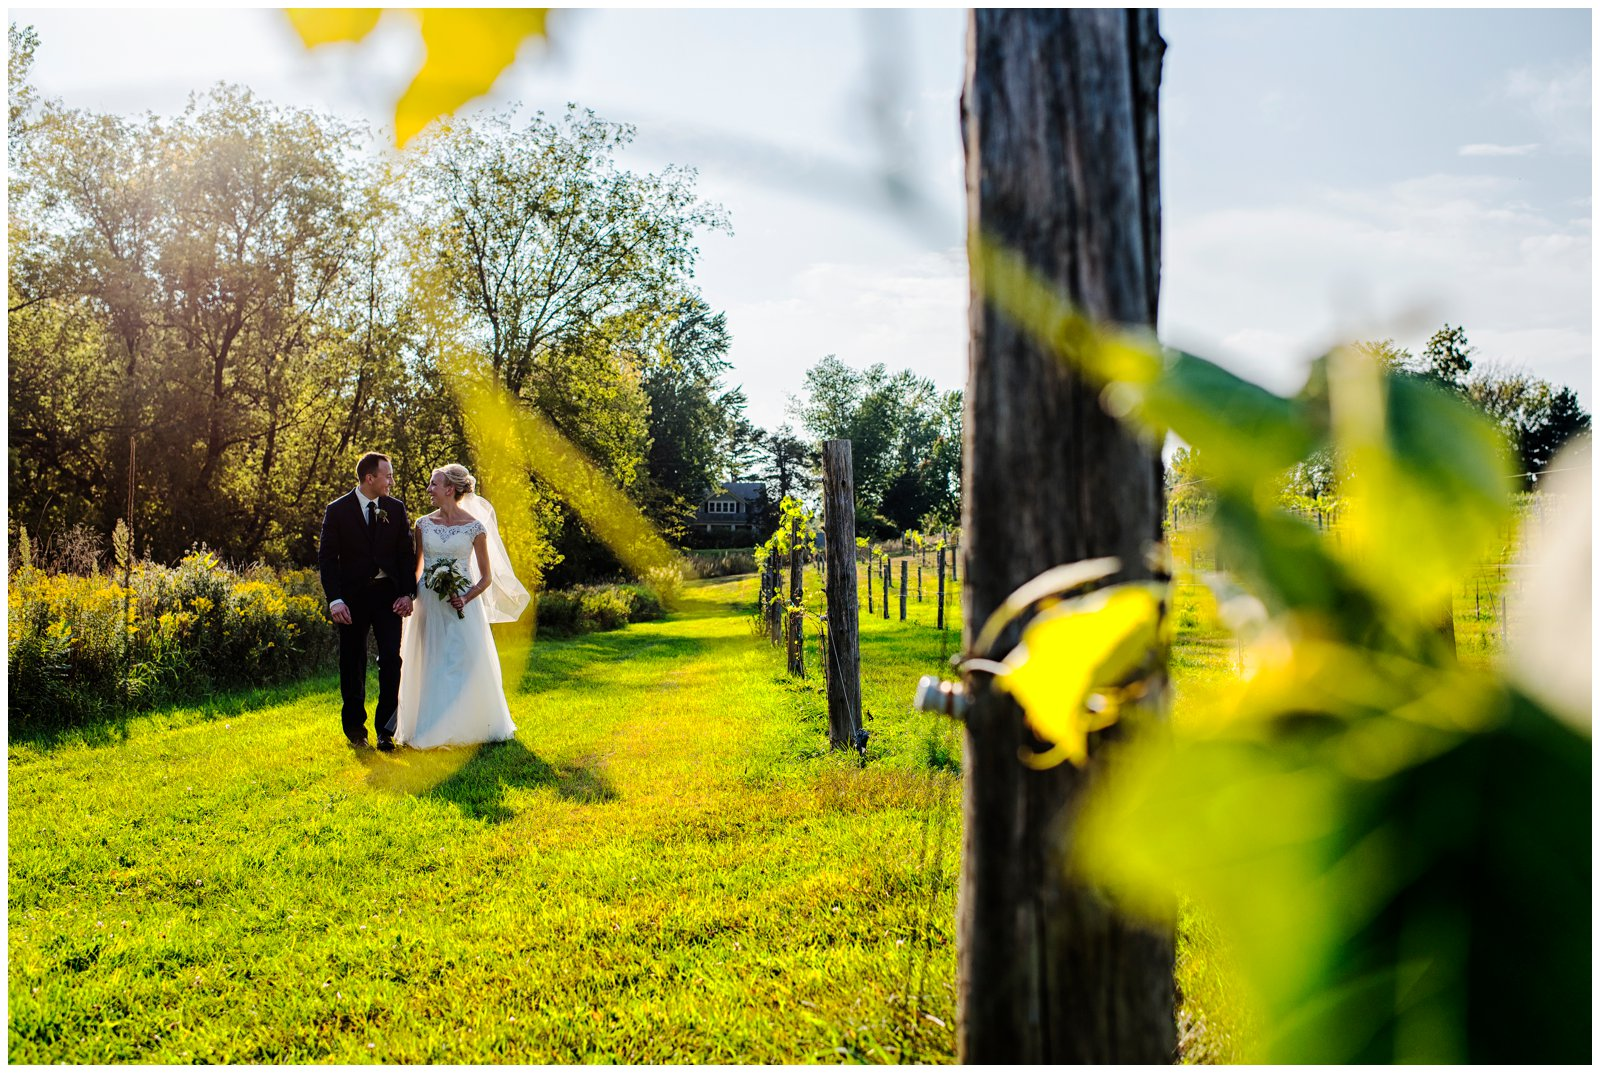 givens farm wedding_00021.JPG